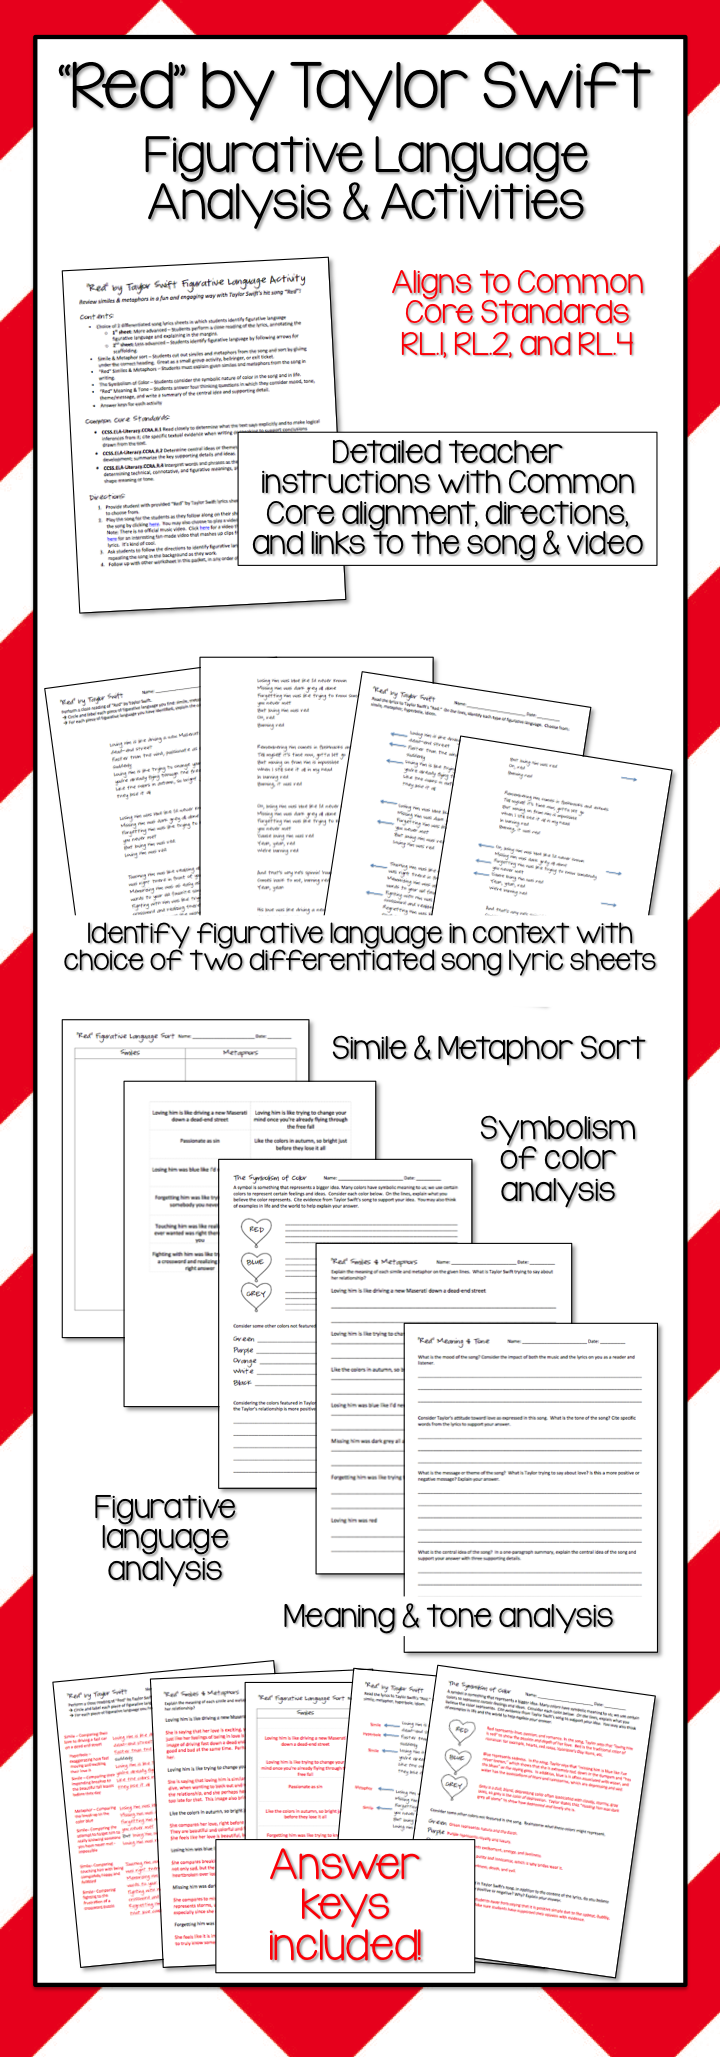 Red by Taylor Swift - Figurative Language Analysis & Activities ...